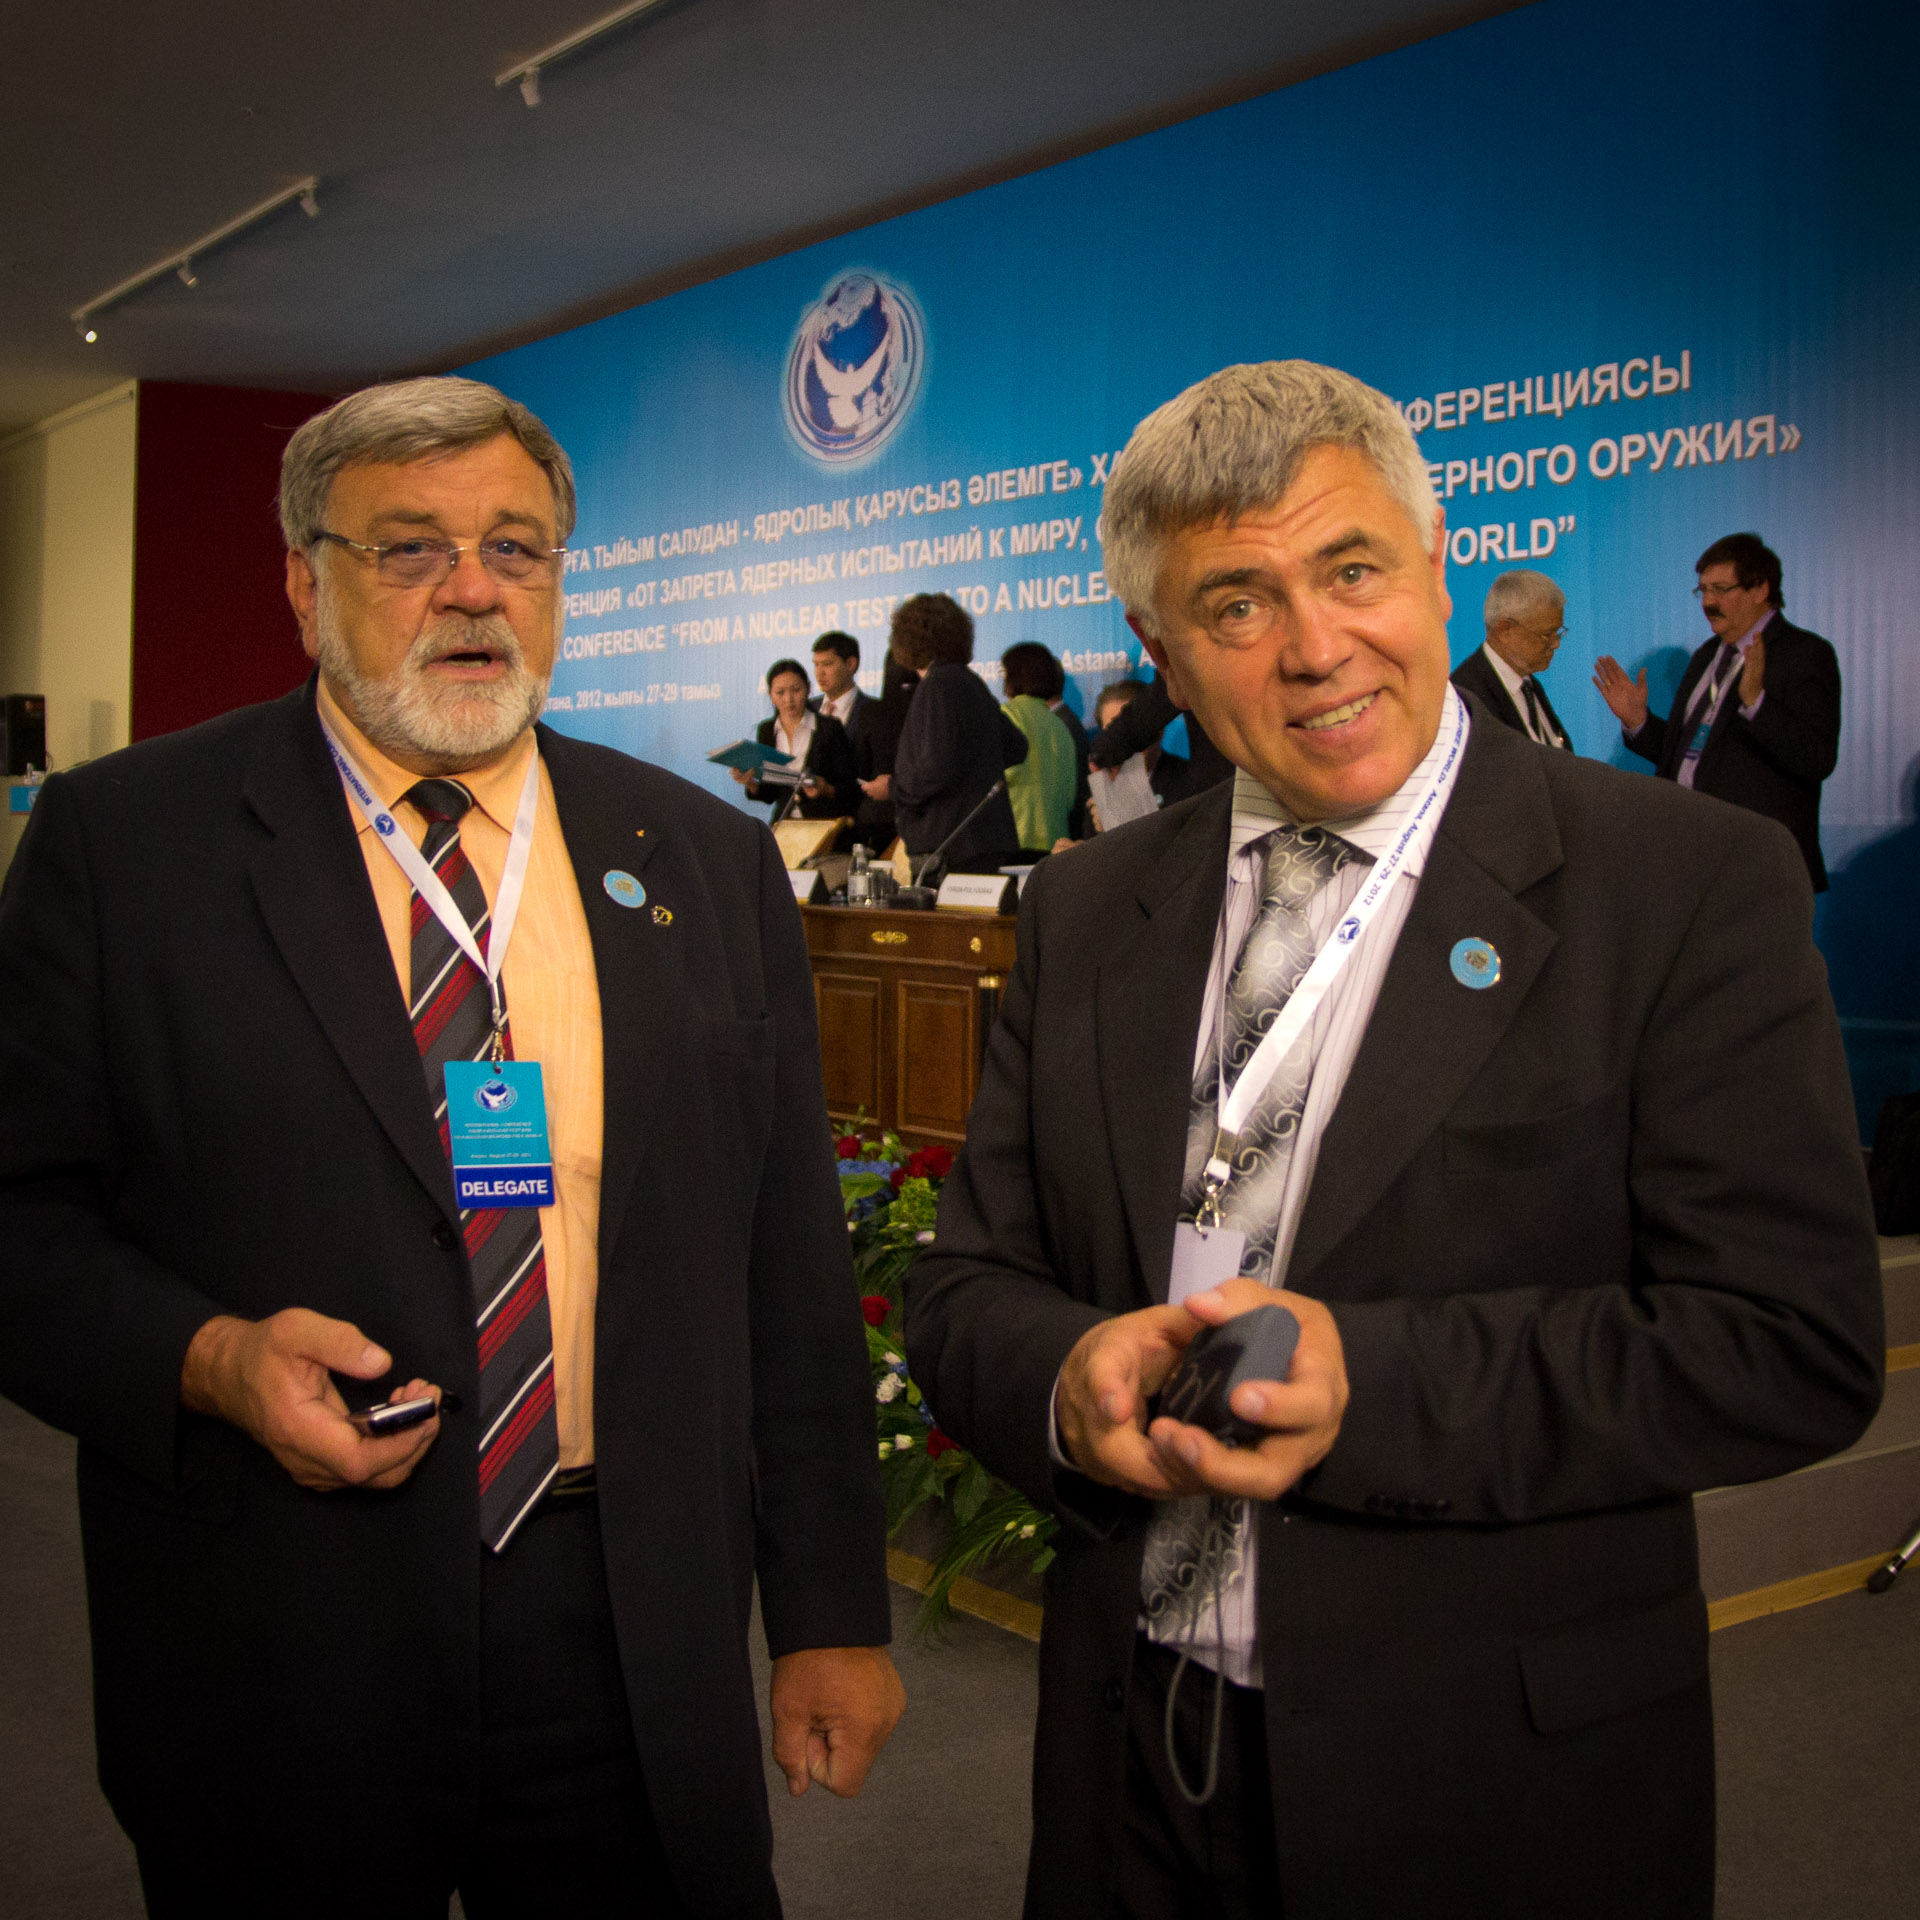 Senators Jaroslav Doubrava and Miroslav Krejča, Czech Republic